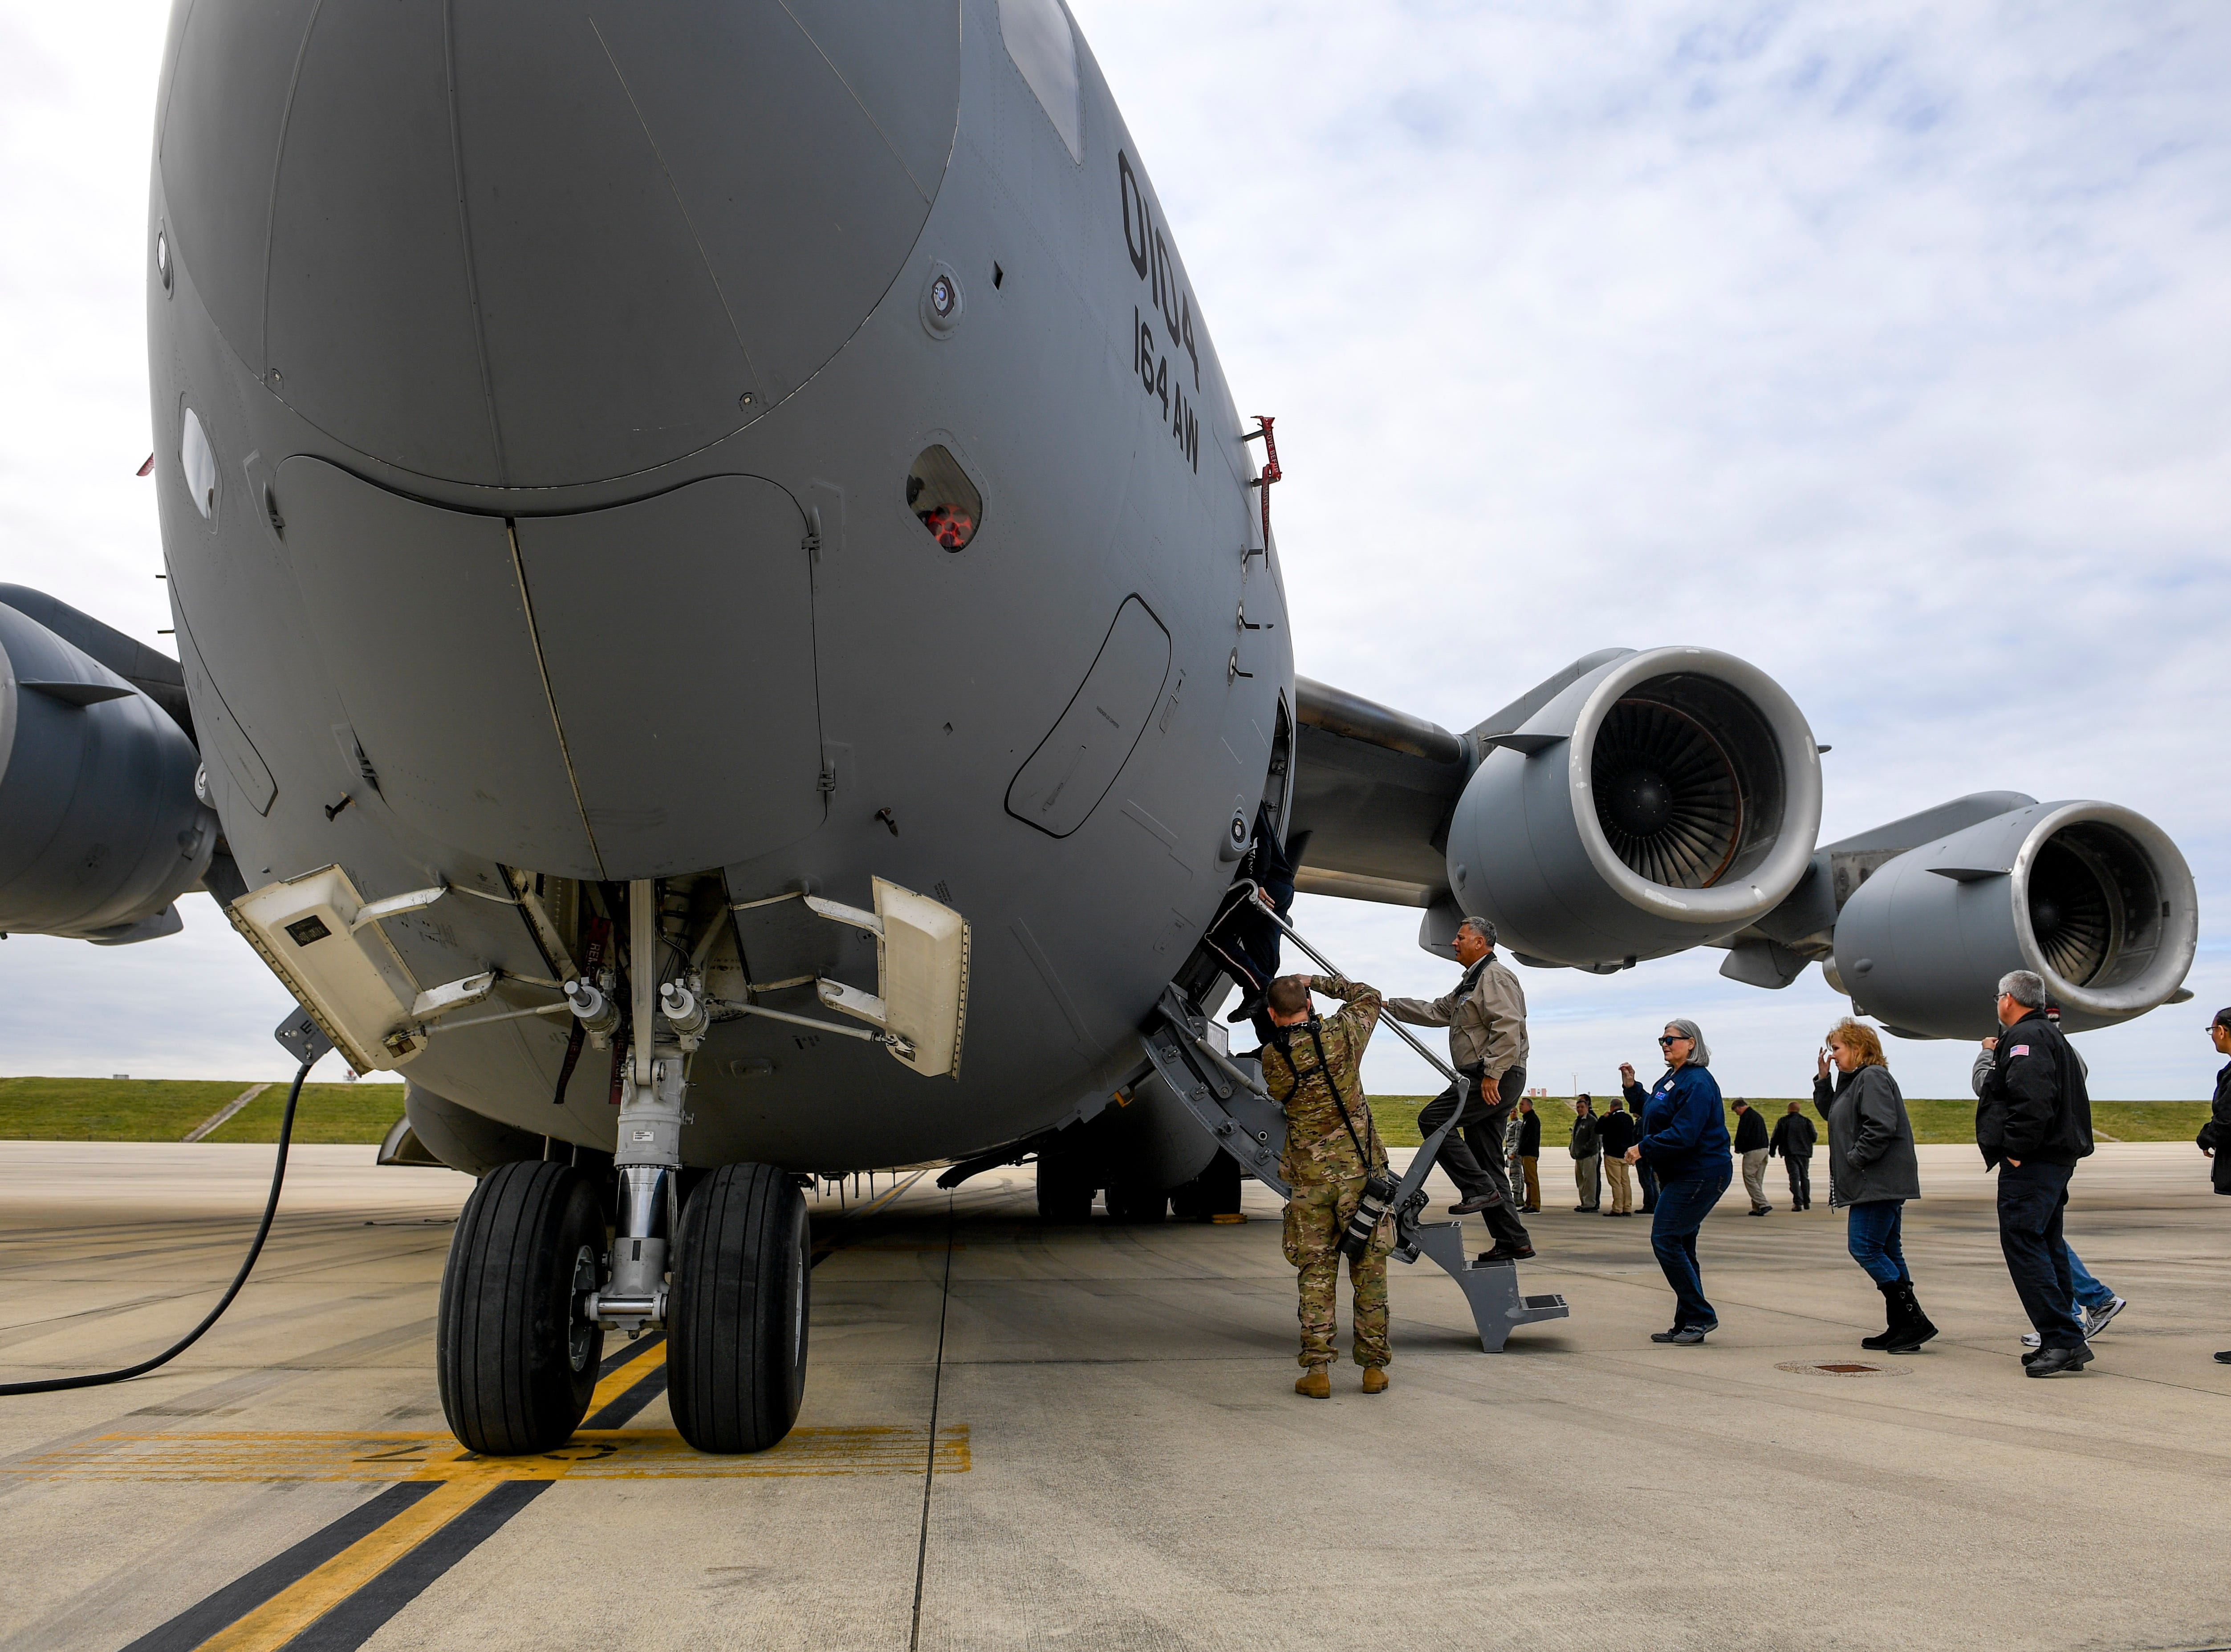 Attendees enter a C-17 airplane during the annual Bosslift event put on by Employer Support of the Guard and Reserve (ESGR) and the Tennessee National Guard at 164th Airlift Wing in Memphis, Tenn., on Thursday, Nov. 8, 2018.